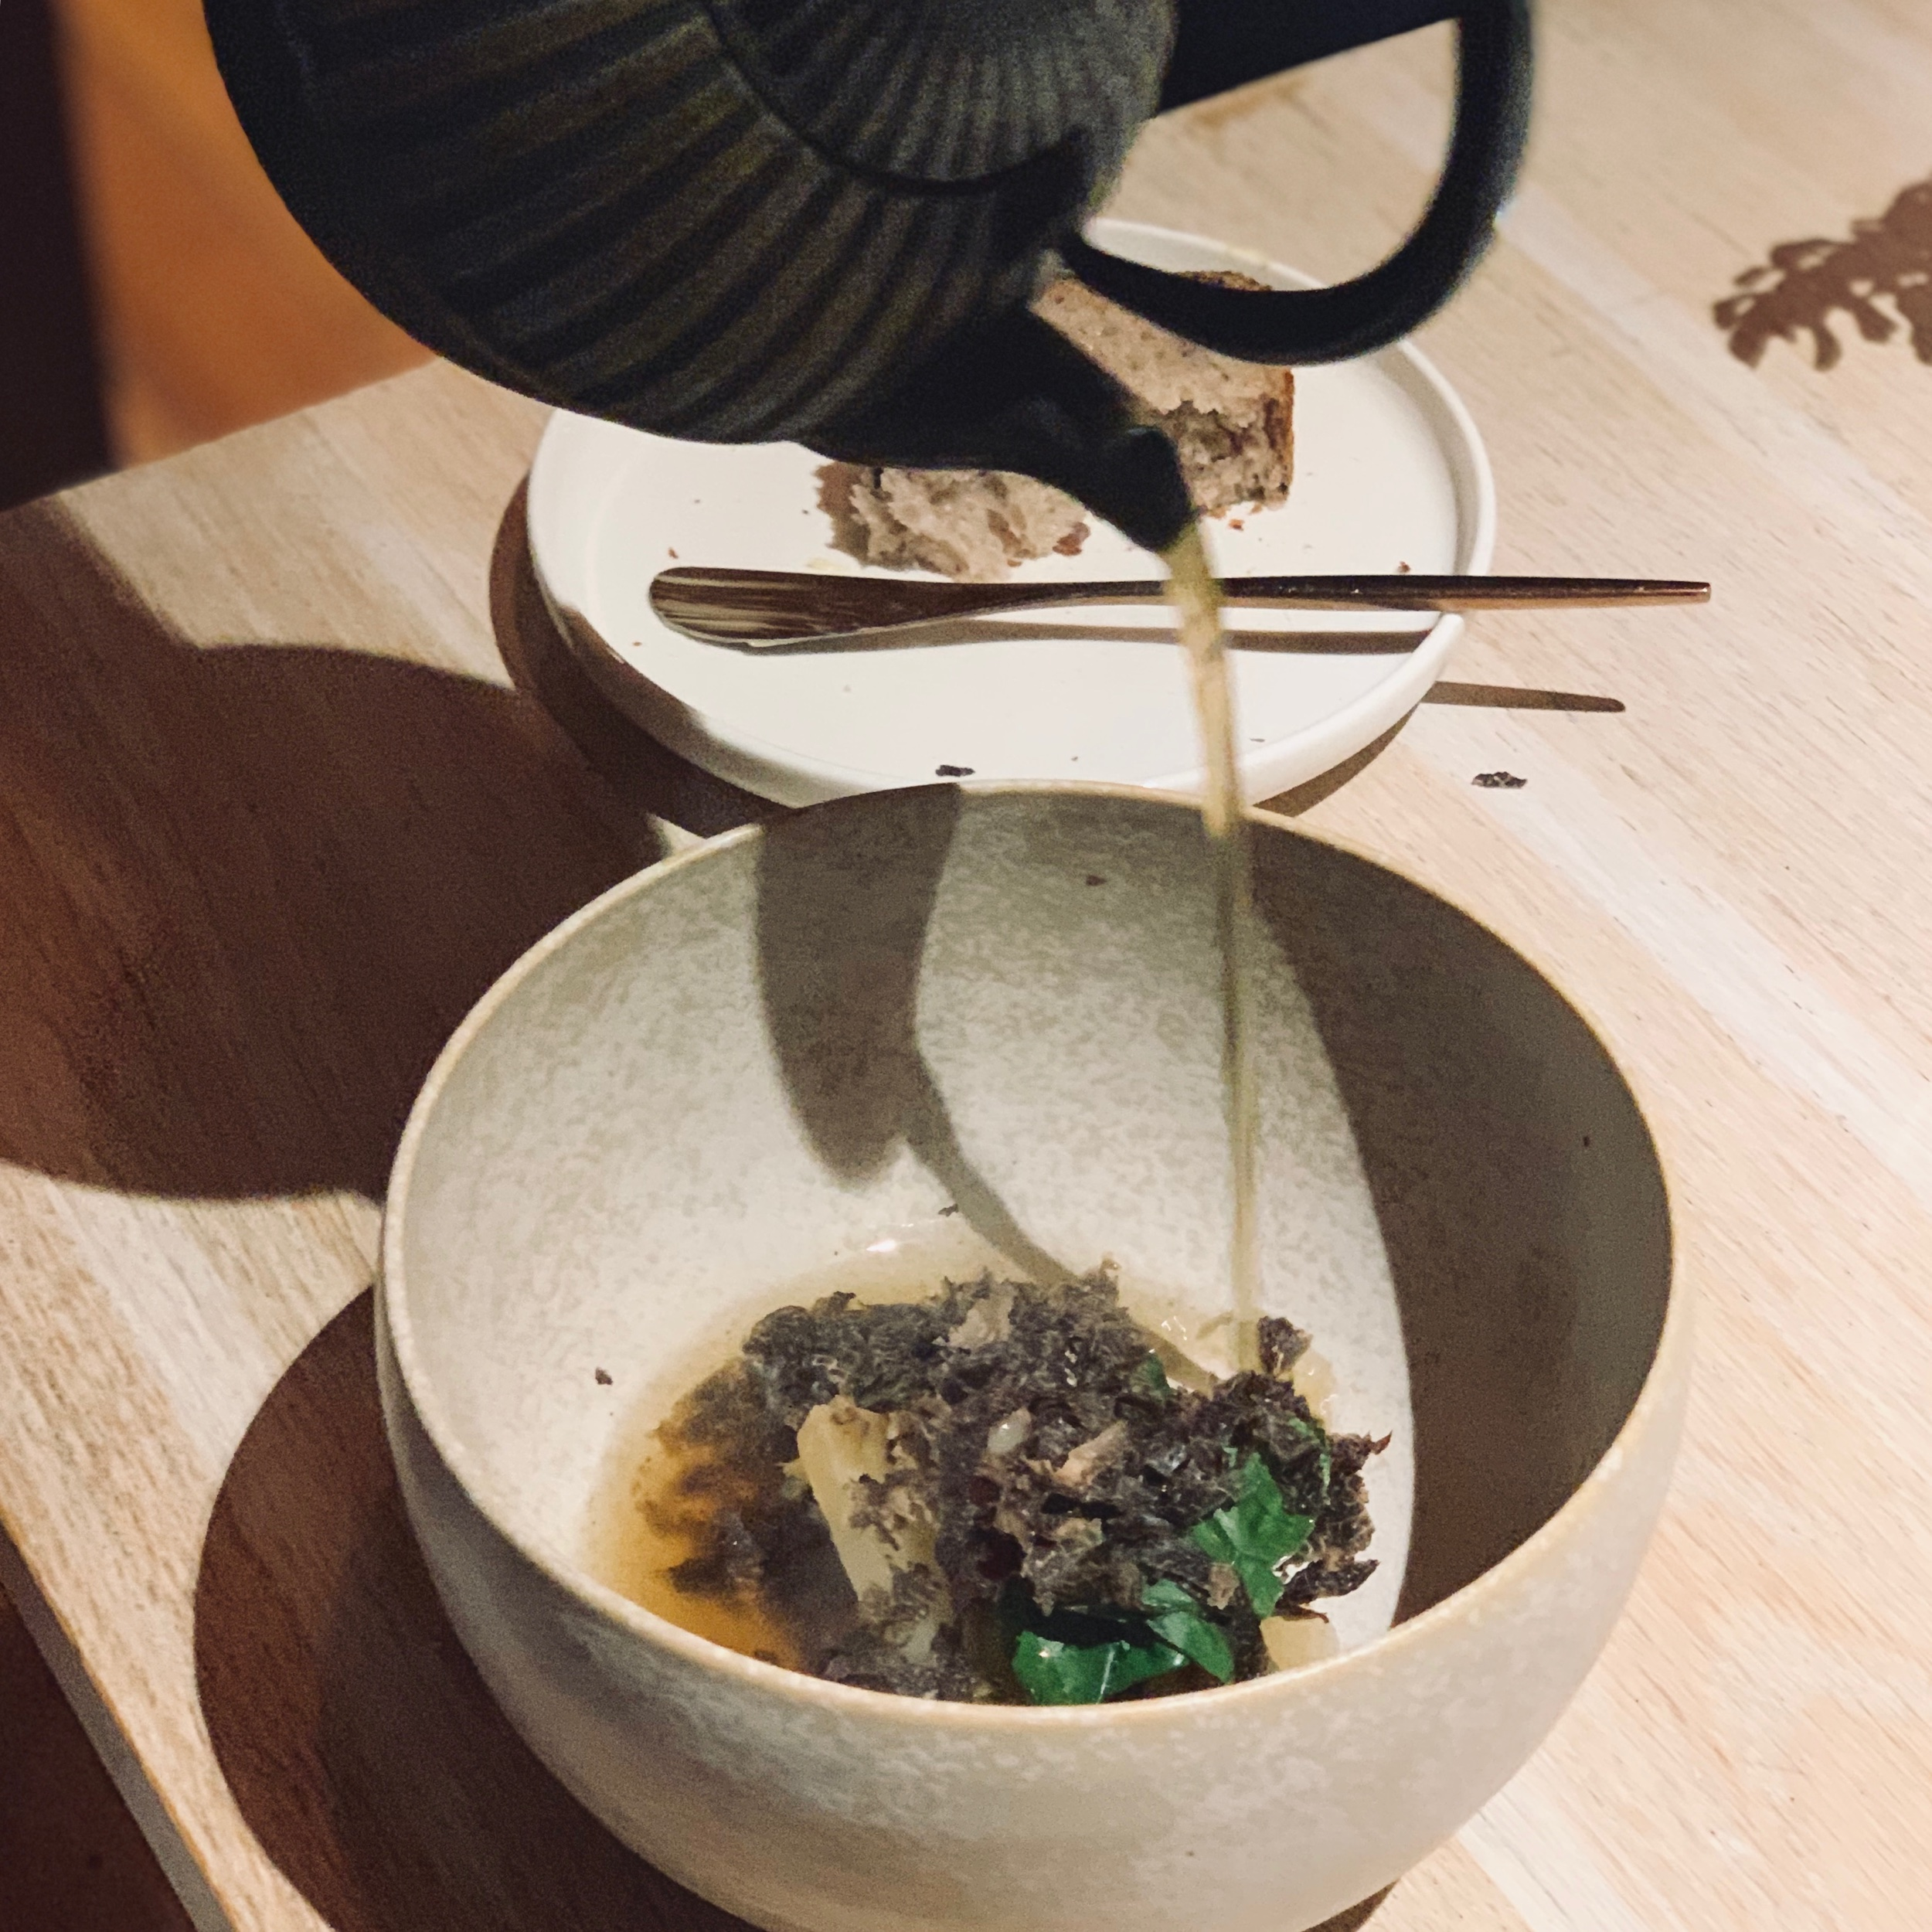 Bulalo an kabute, calamansi at Pato or Otway shiitake mushroom with Great Ocean duck, charred kombu and Manjimup truffle